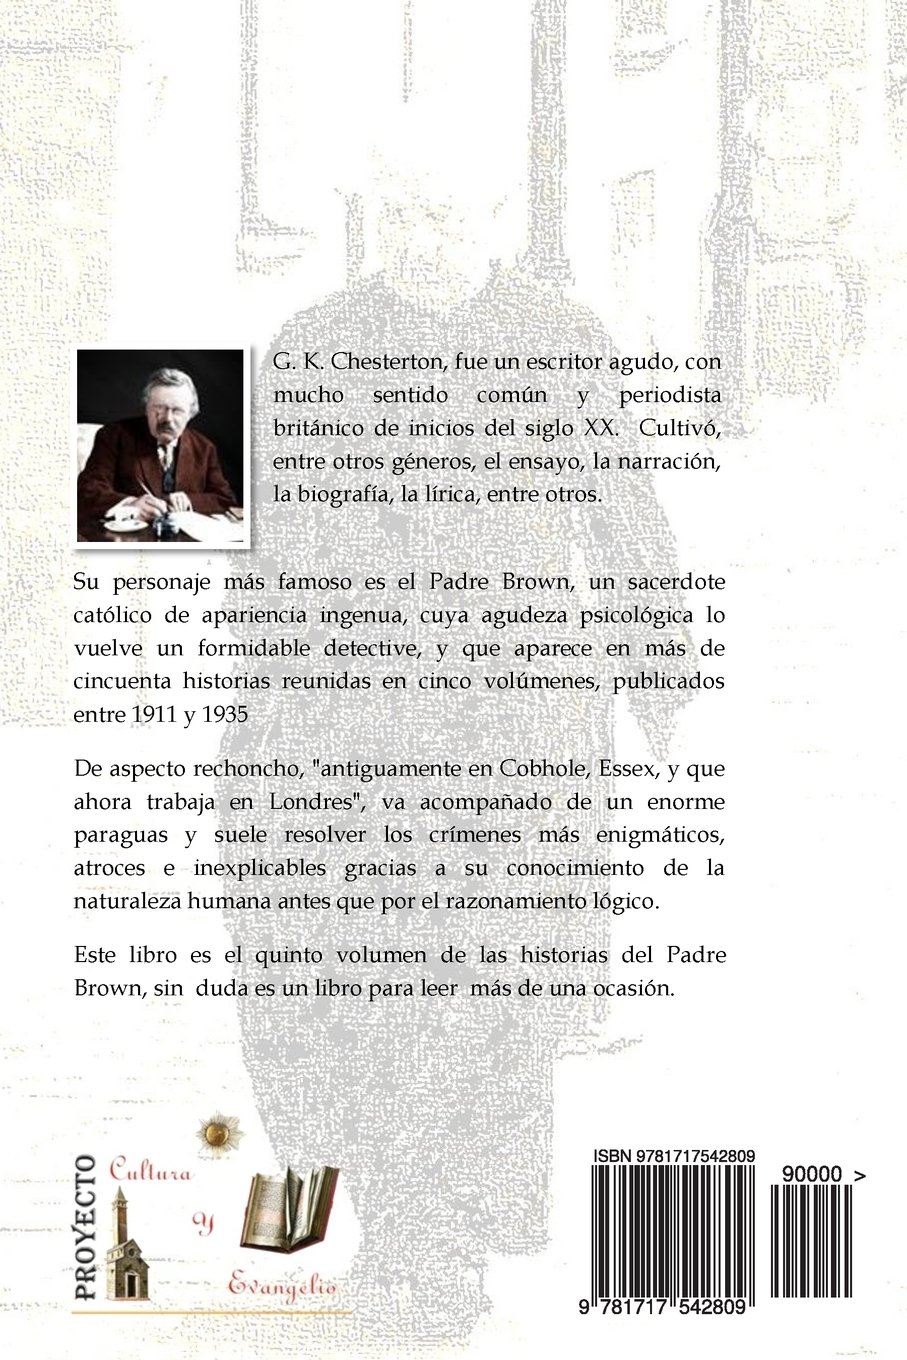 El Escandalo del Padre Brown: Volumen V - Historias del Padre Brown (Volume 5) (Spanish Edition): G. K. Chesterton, Sr. Lubin Jose Paz: 9781717542809: ...